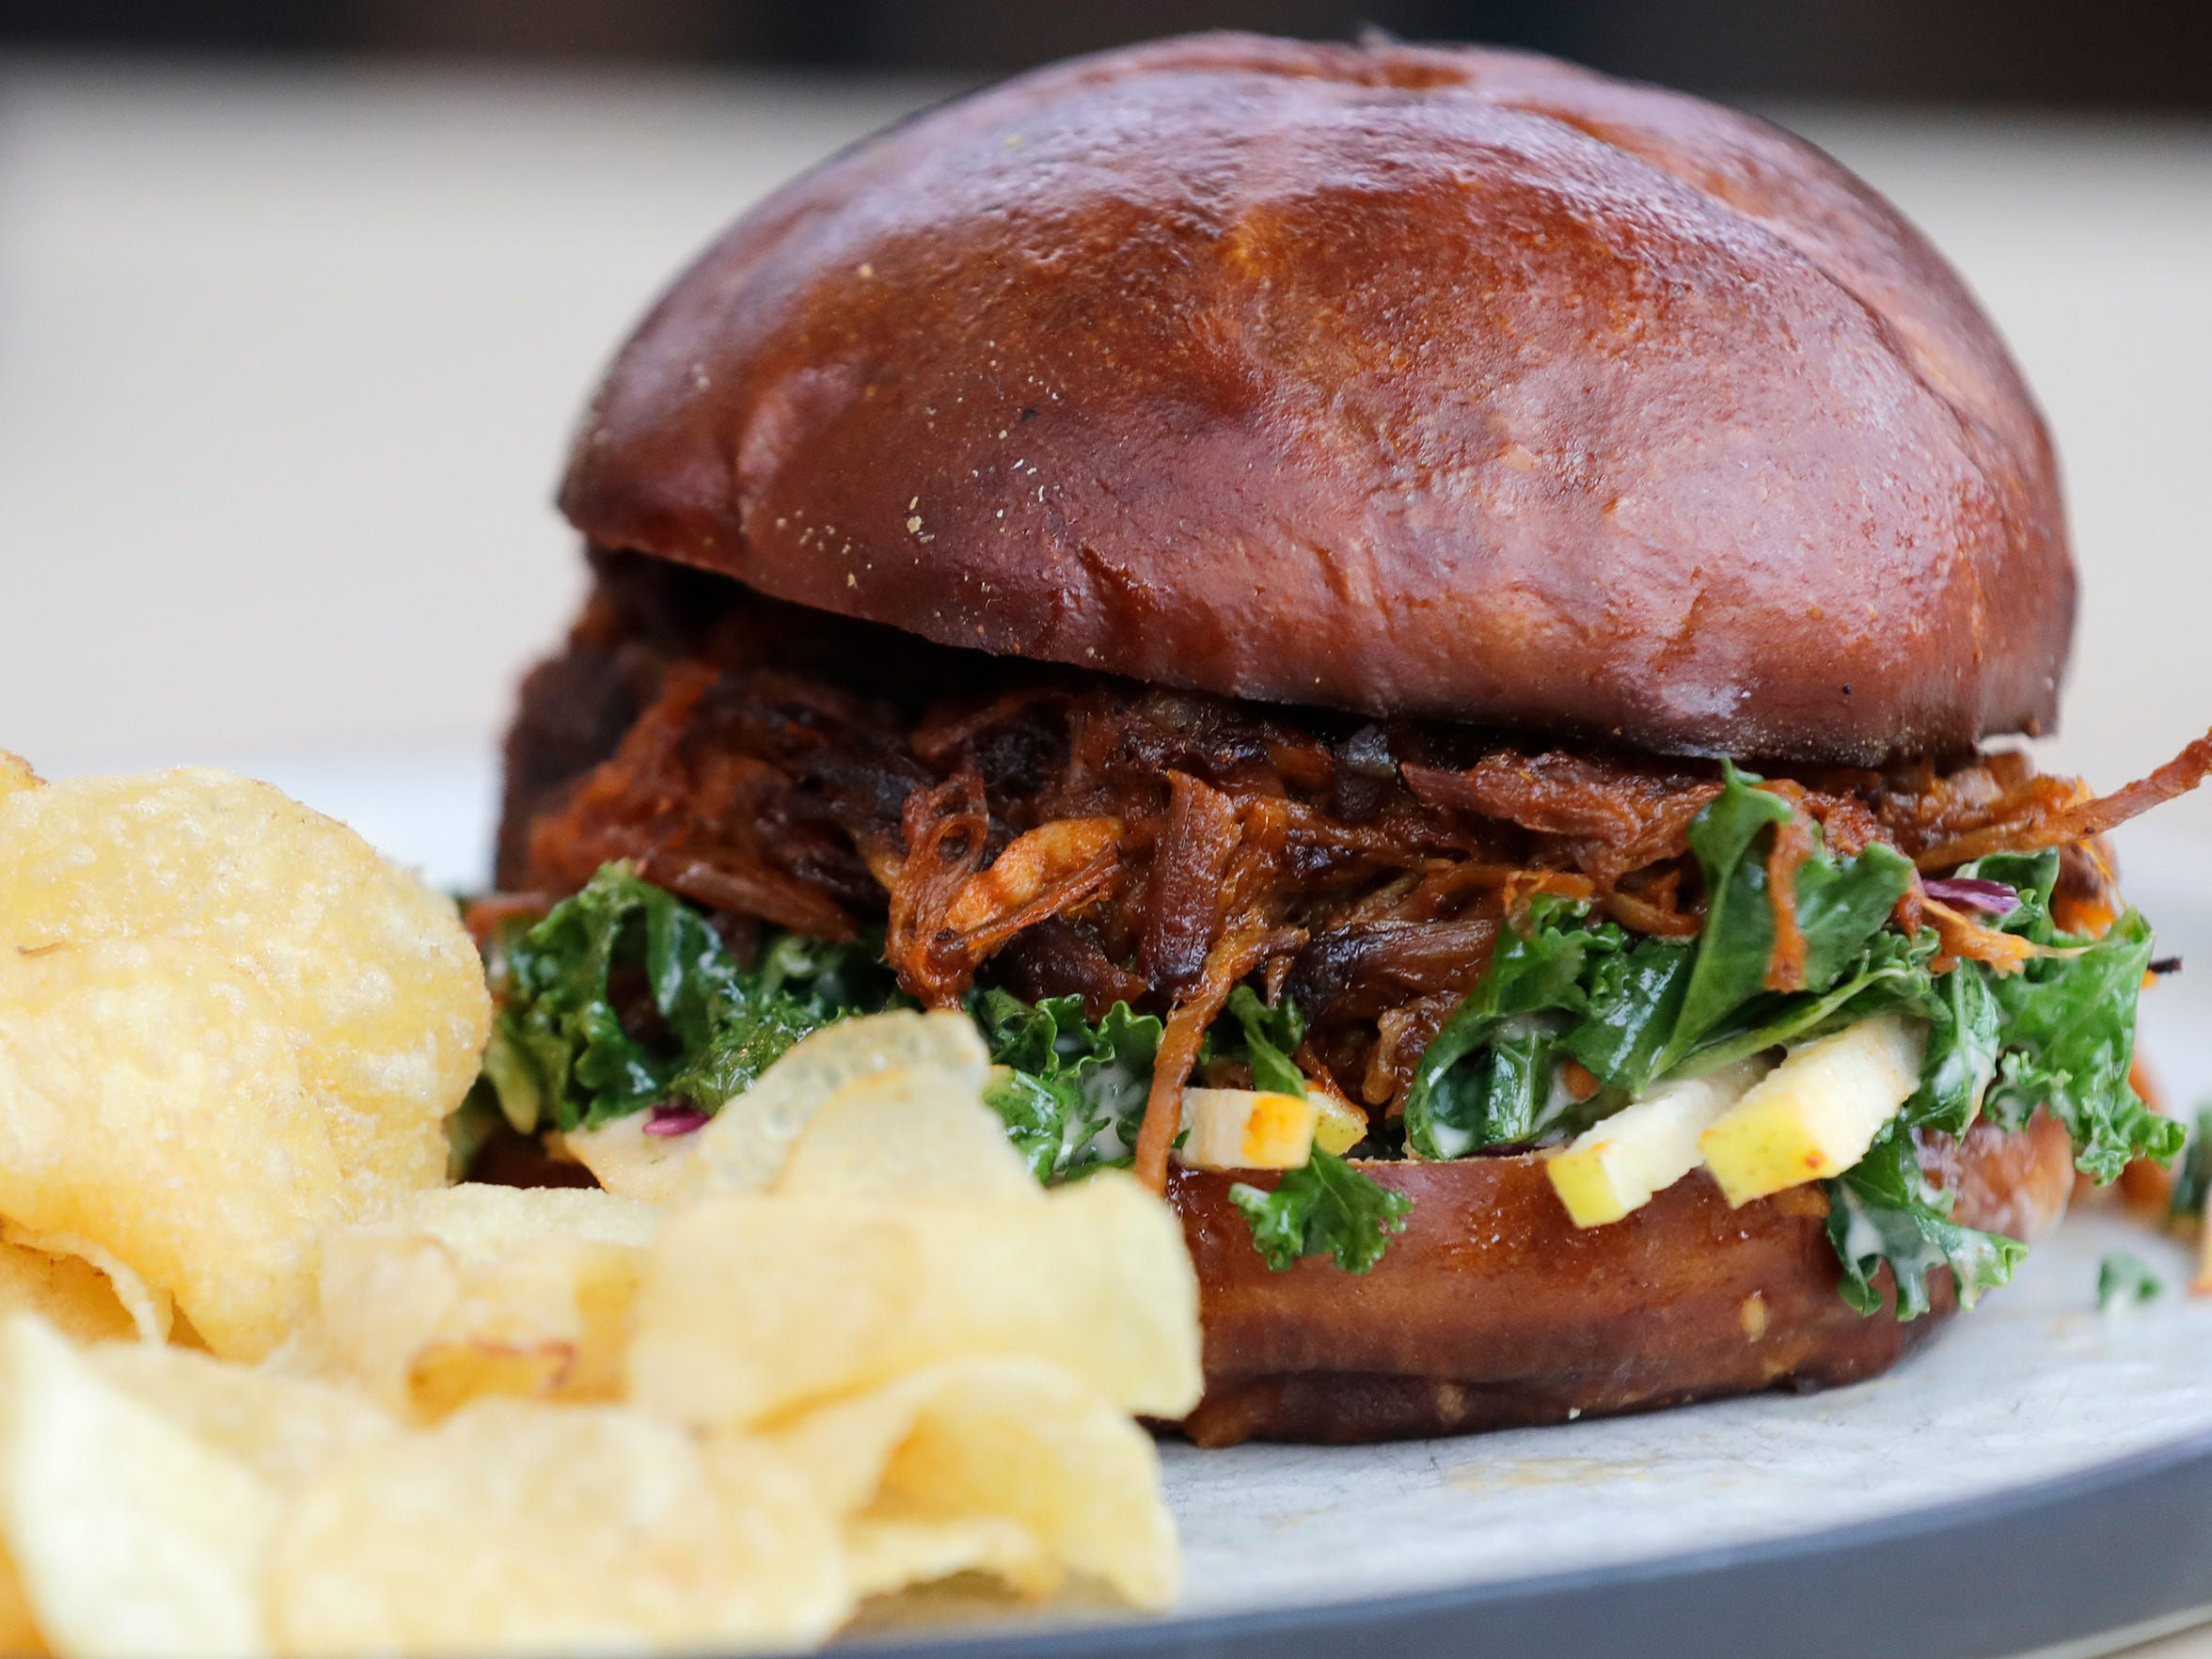 The BBQ pulled pork sandwich is shown at Hinterland Brewing on Friday, July 21, 2017, in Ashwaubenon, Wis. Adam Wesley/USA TODAY NETWORK-Wisconsin